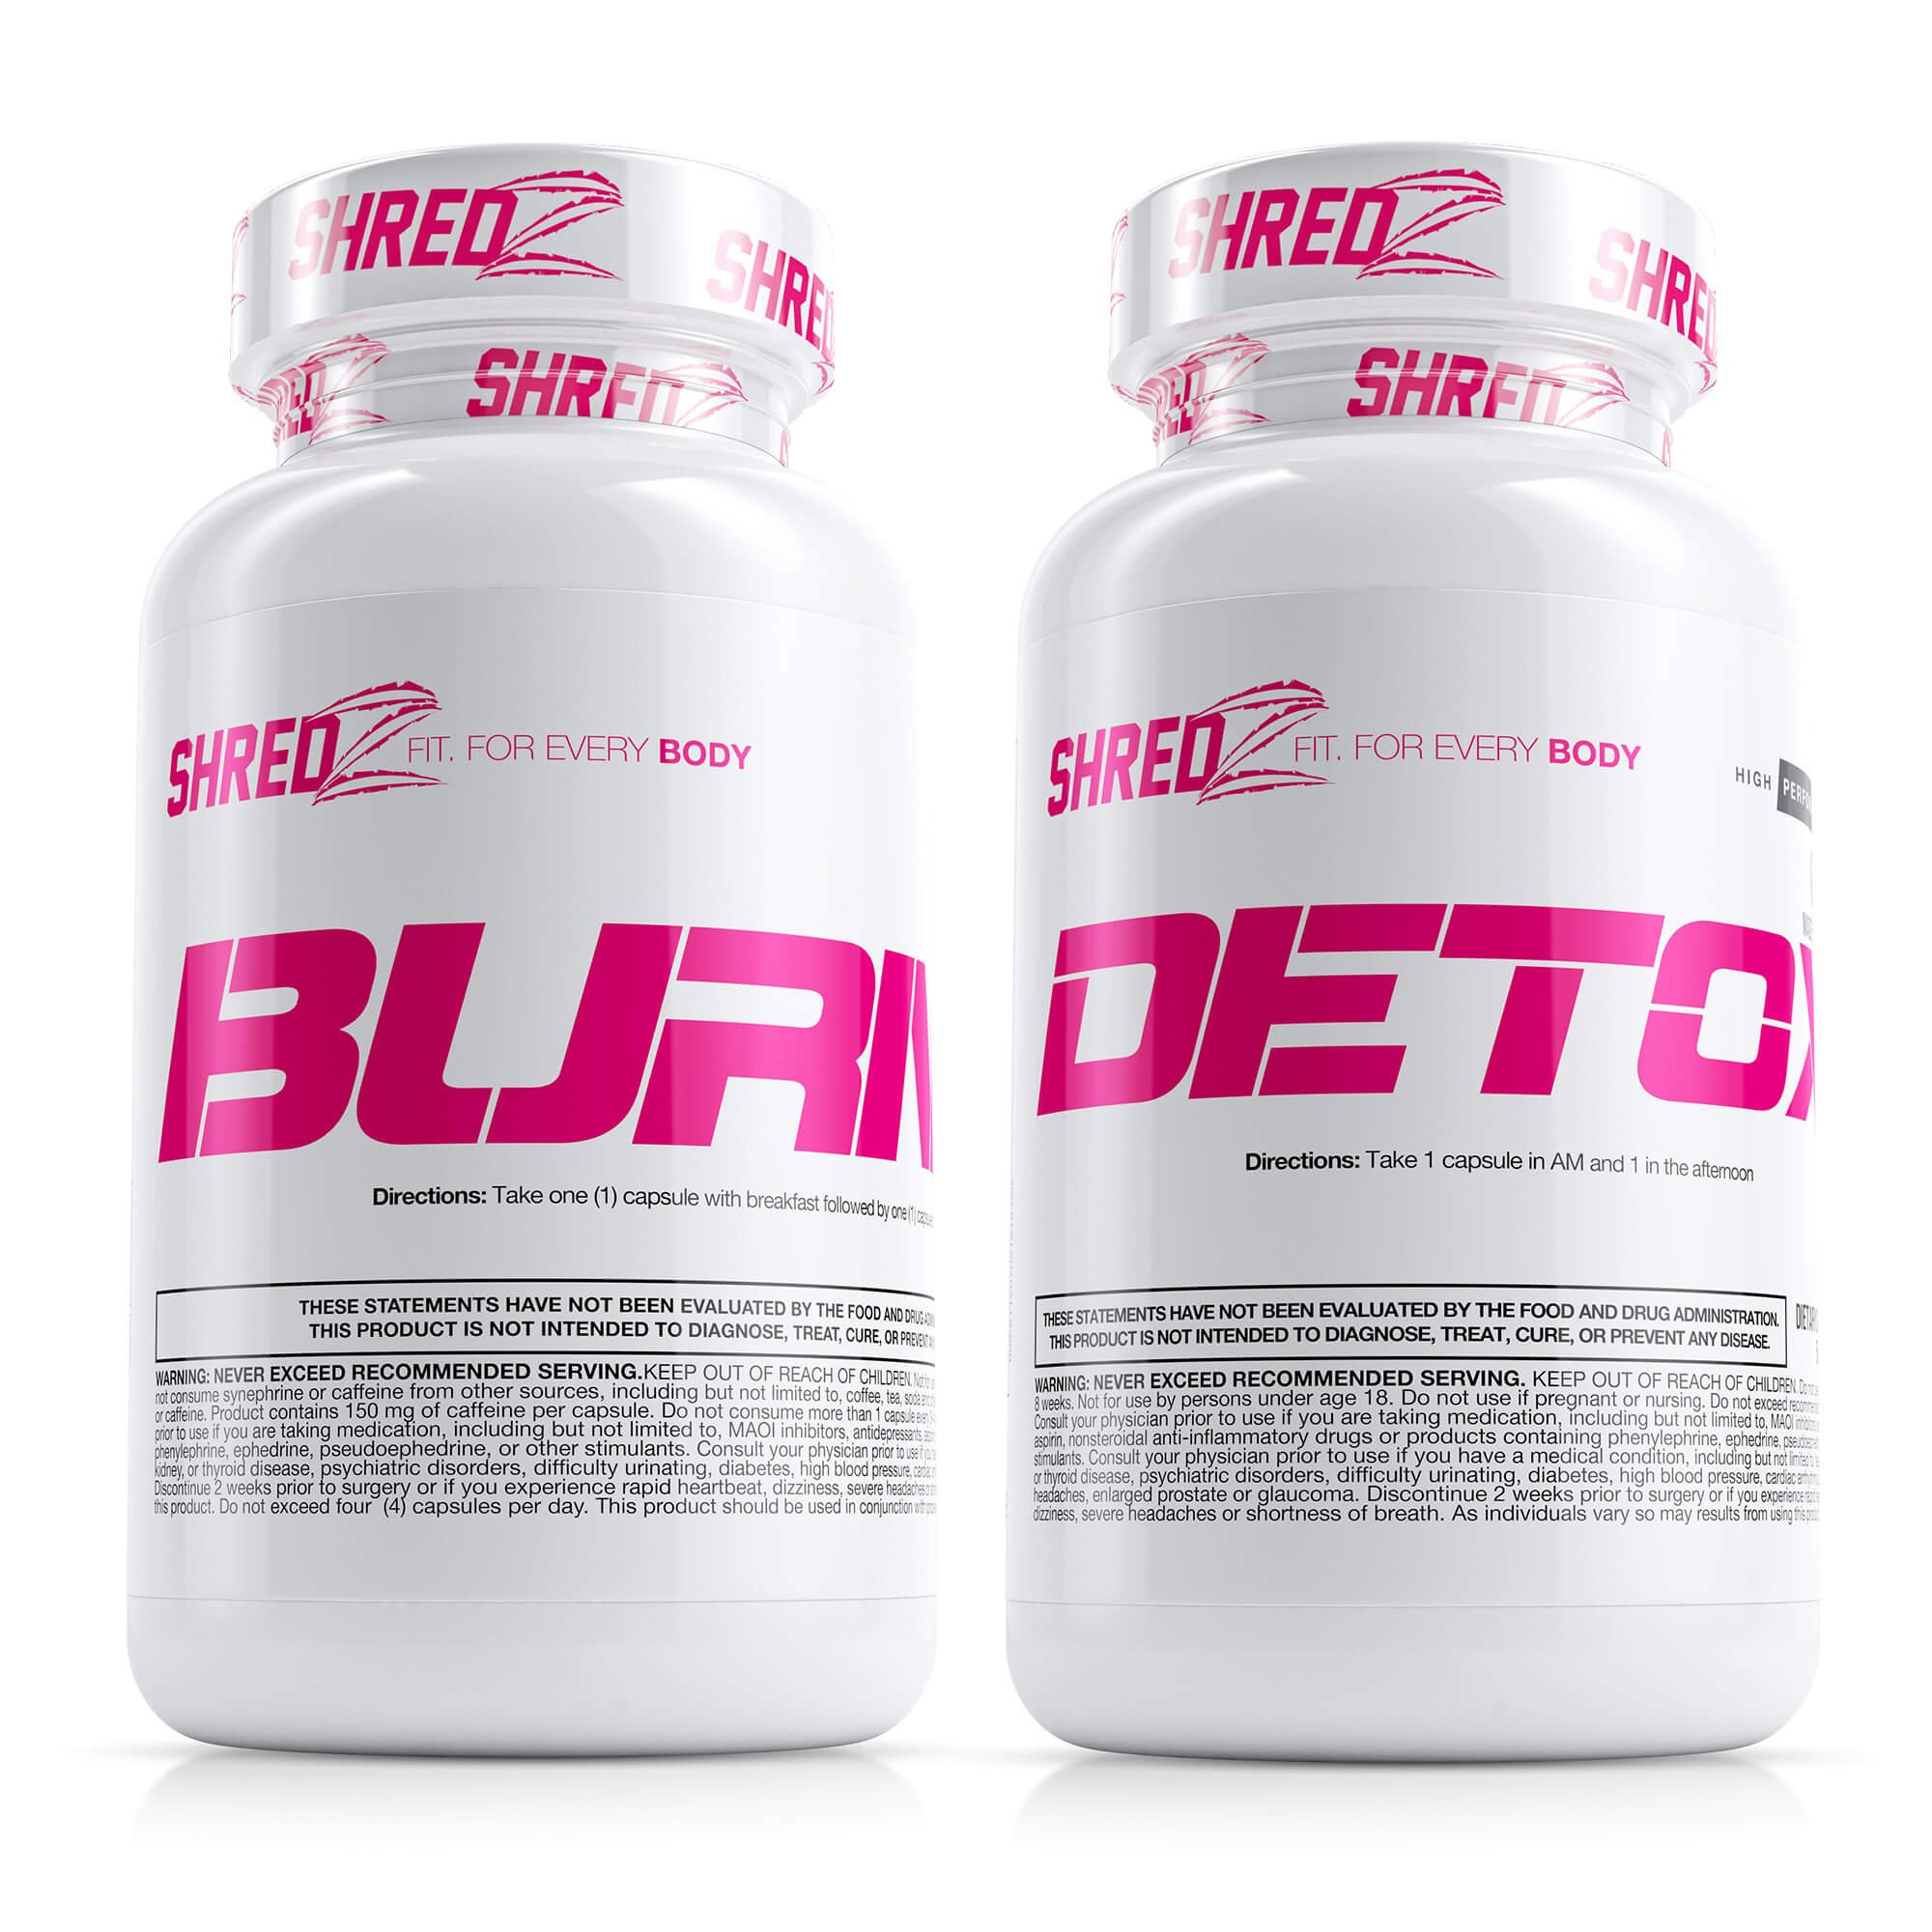 SHREDZ Sexy & Lean Supplement Stack for Women, Lose Weight, Burn Fat, Build Lean Muscle, Best Ingredients (30 Day Supply)